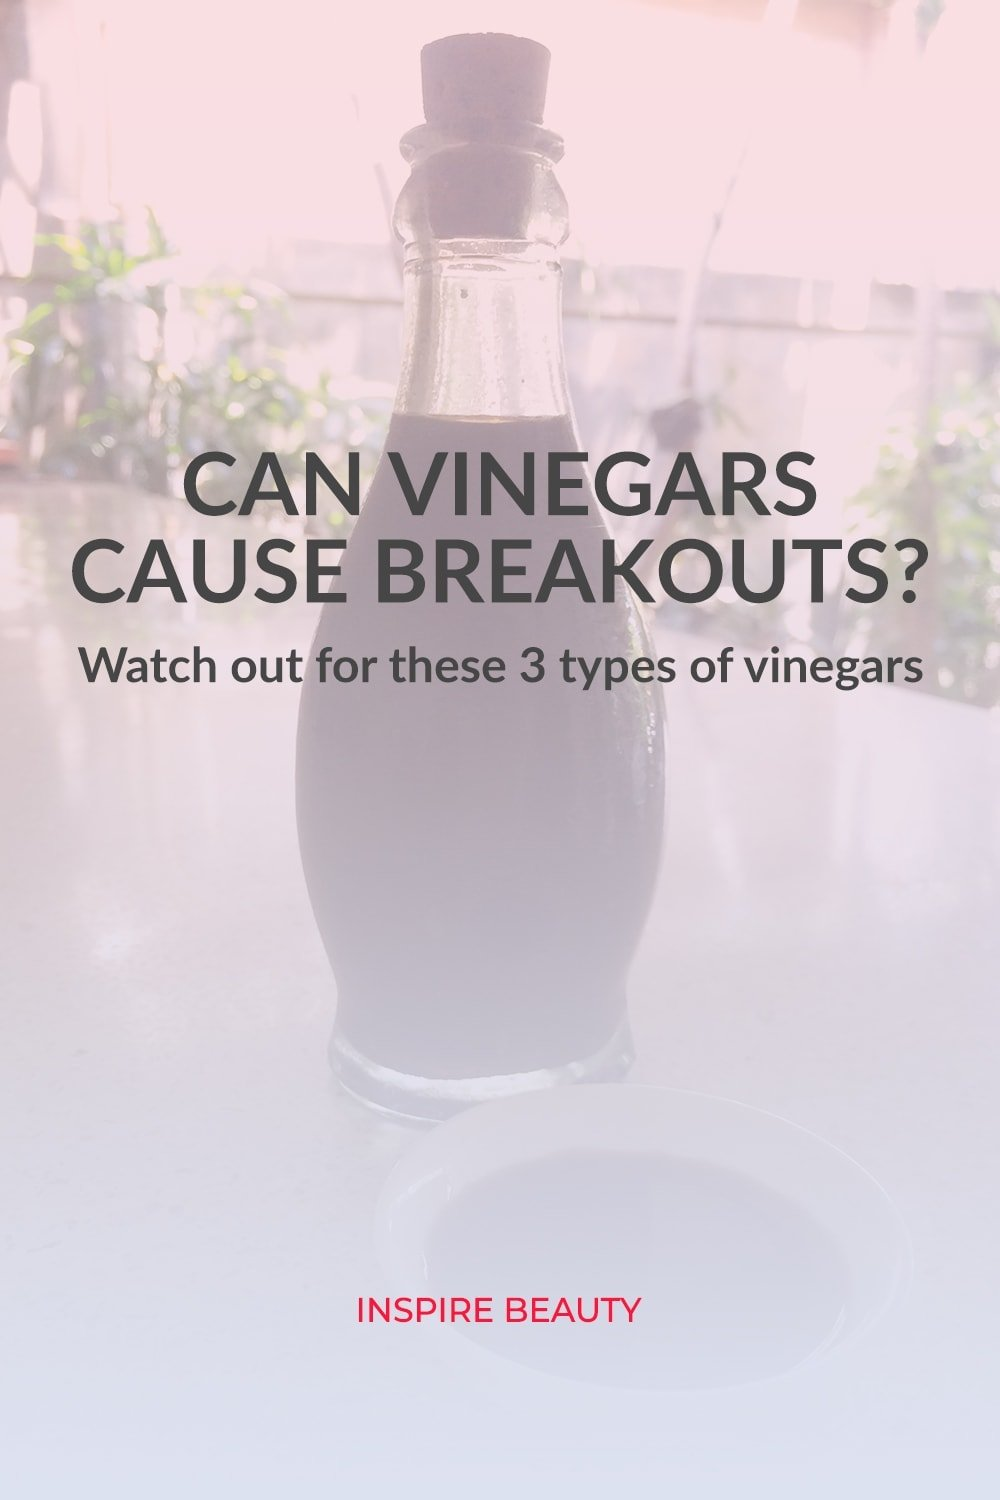 Find out which vinegars can cause breakouts and acne.